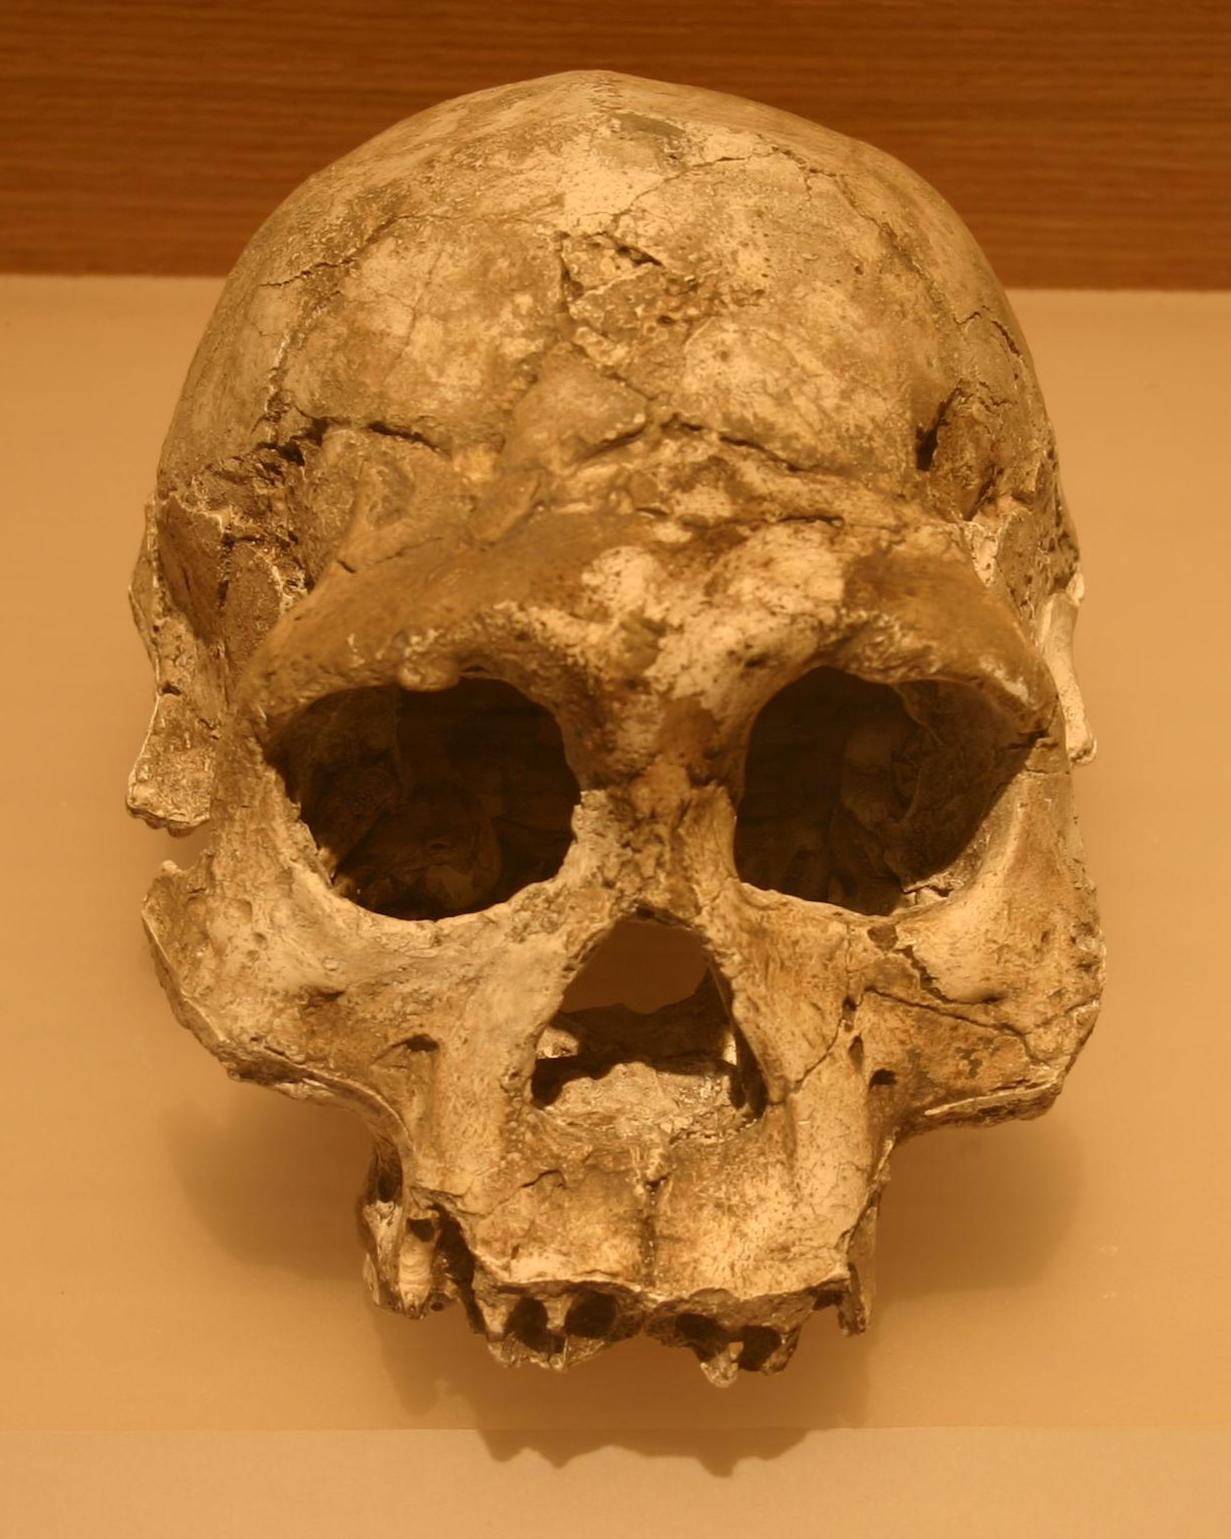 dmanisi dating Based on paleomagnetismand 40ar/39ar dating, the hominin remains at dmanisi are in dmanisi unfortunately, no human the human fossil record, part 9.